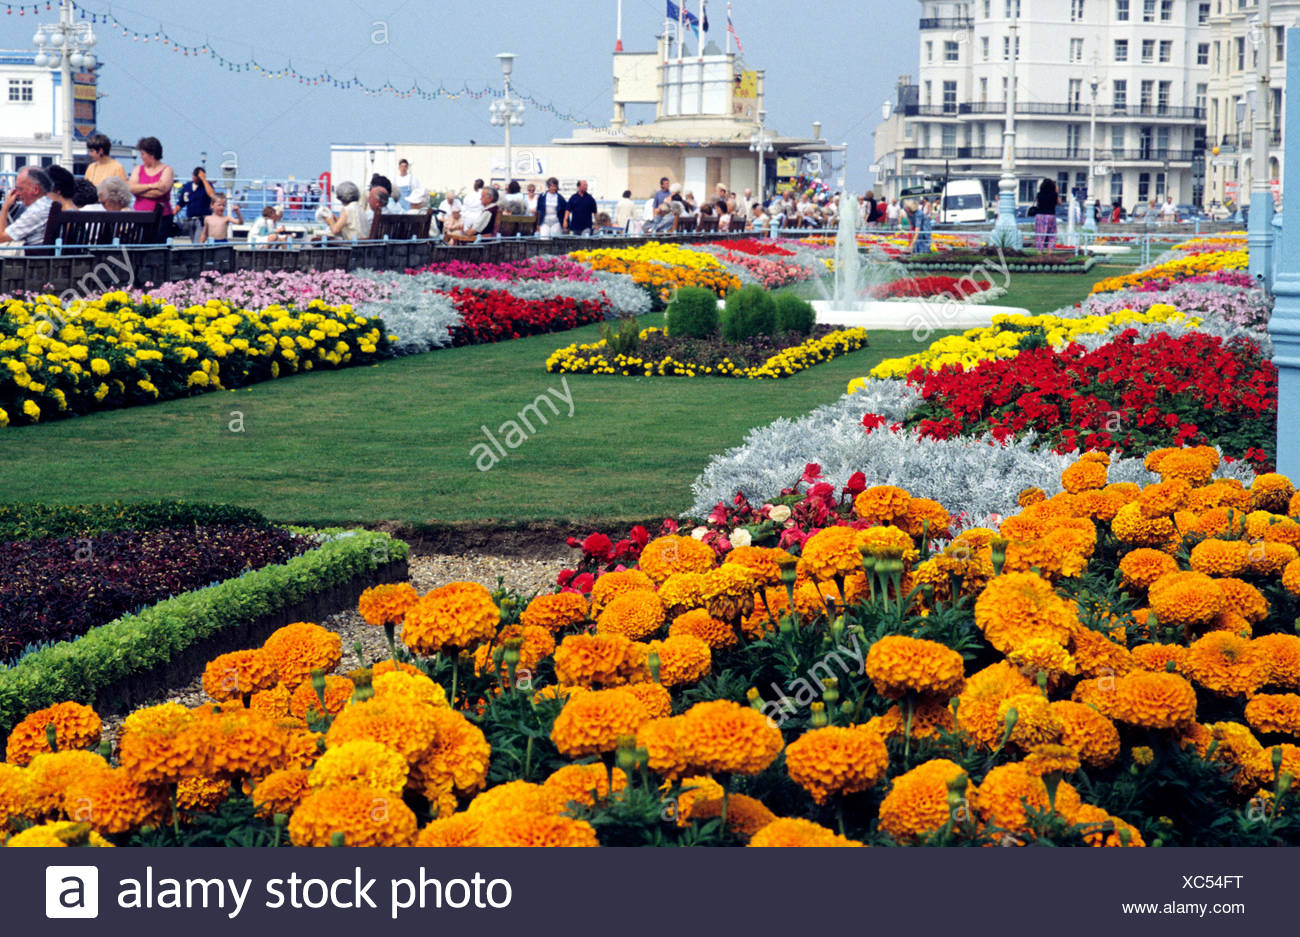 Eastbourne Sussex, seafront flower gardens flowers garden couth coast coastal English resort promenade promenades England UK sea - Stock Image